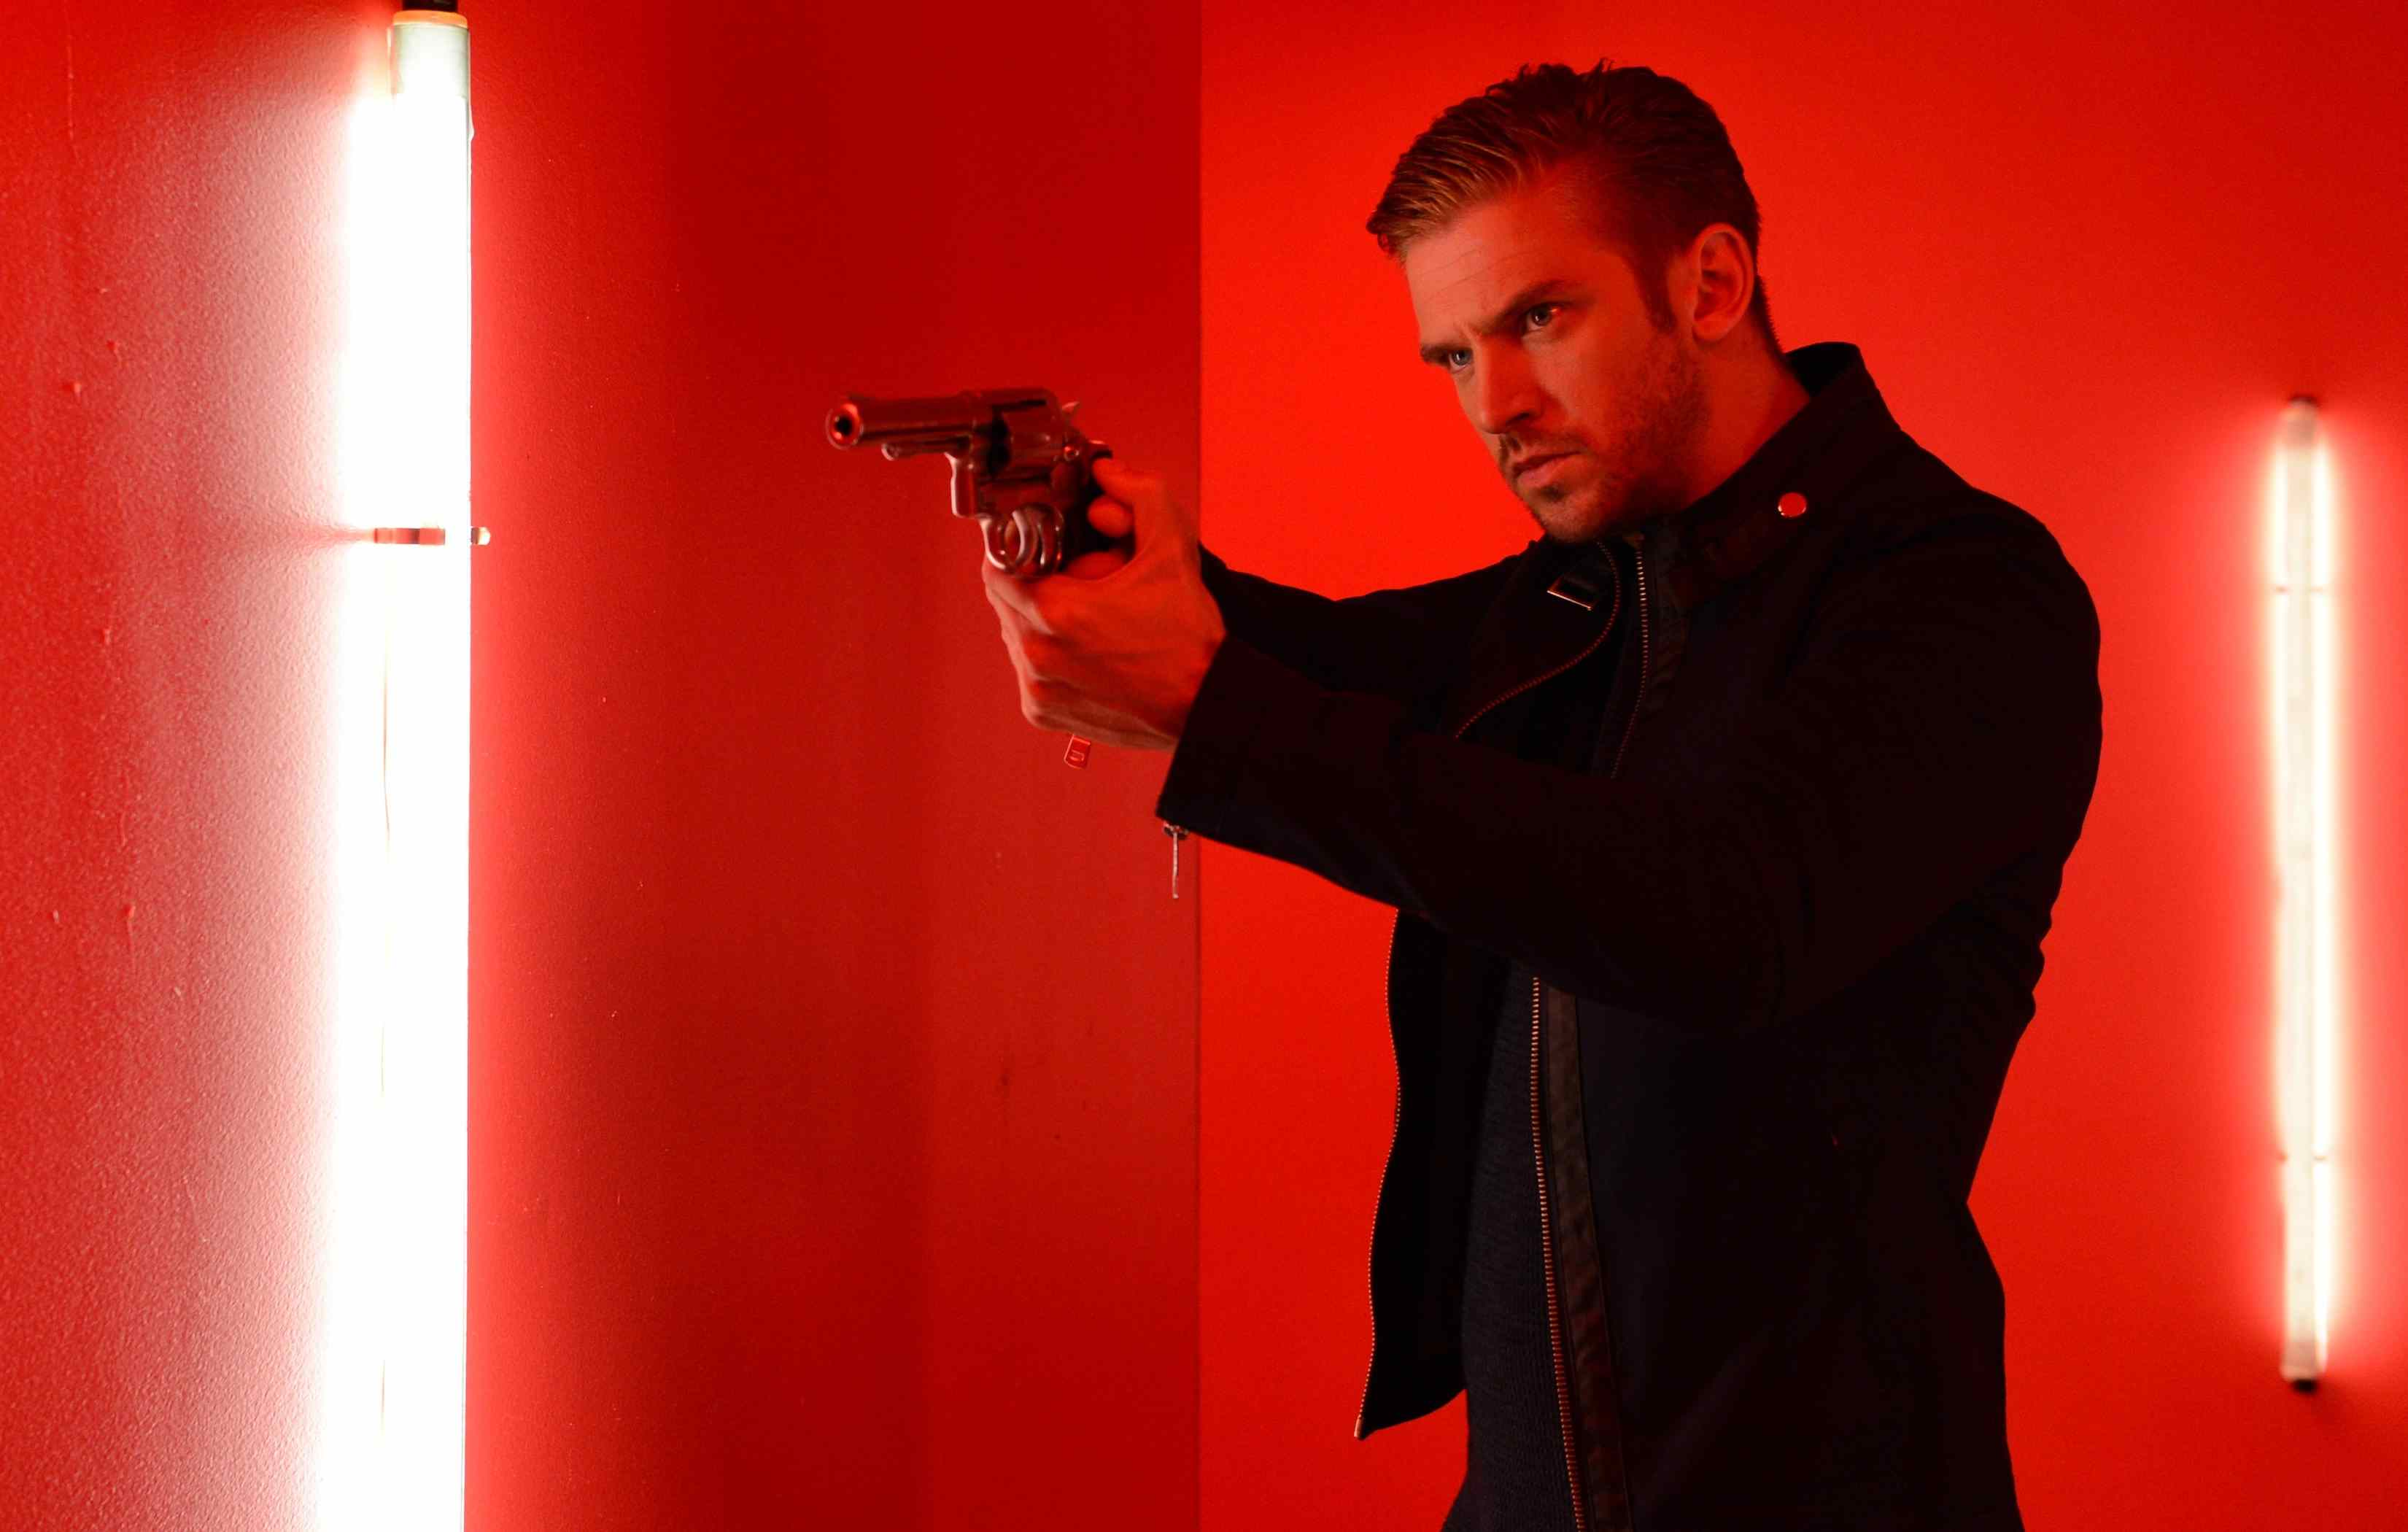 David (Dan Stevens) wields a gun in Adam Wingard's The Guest.